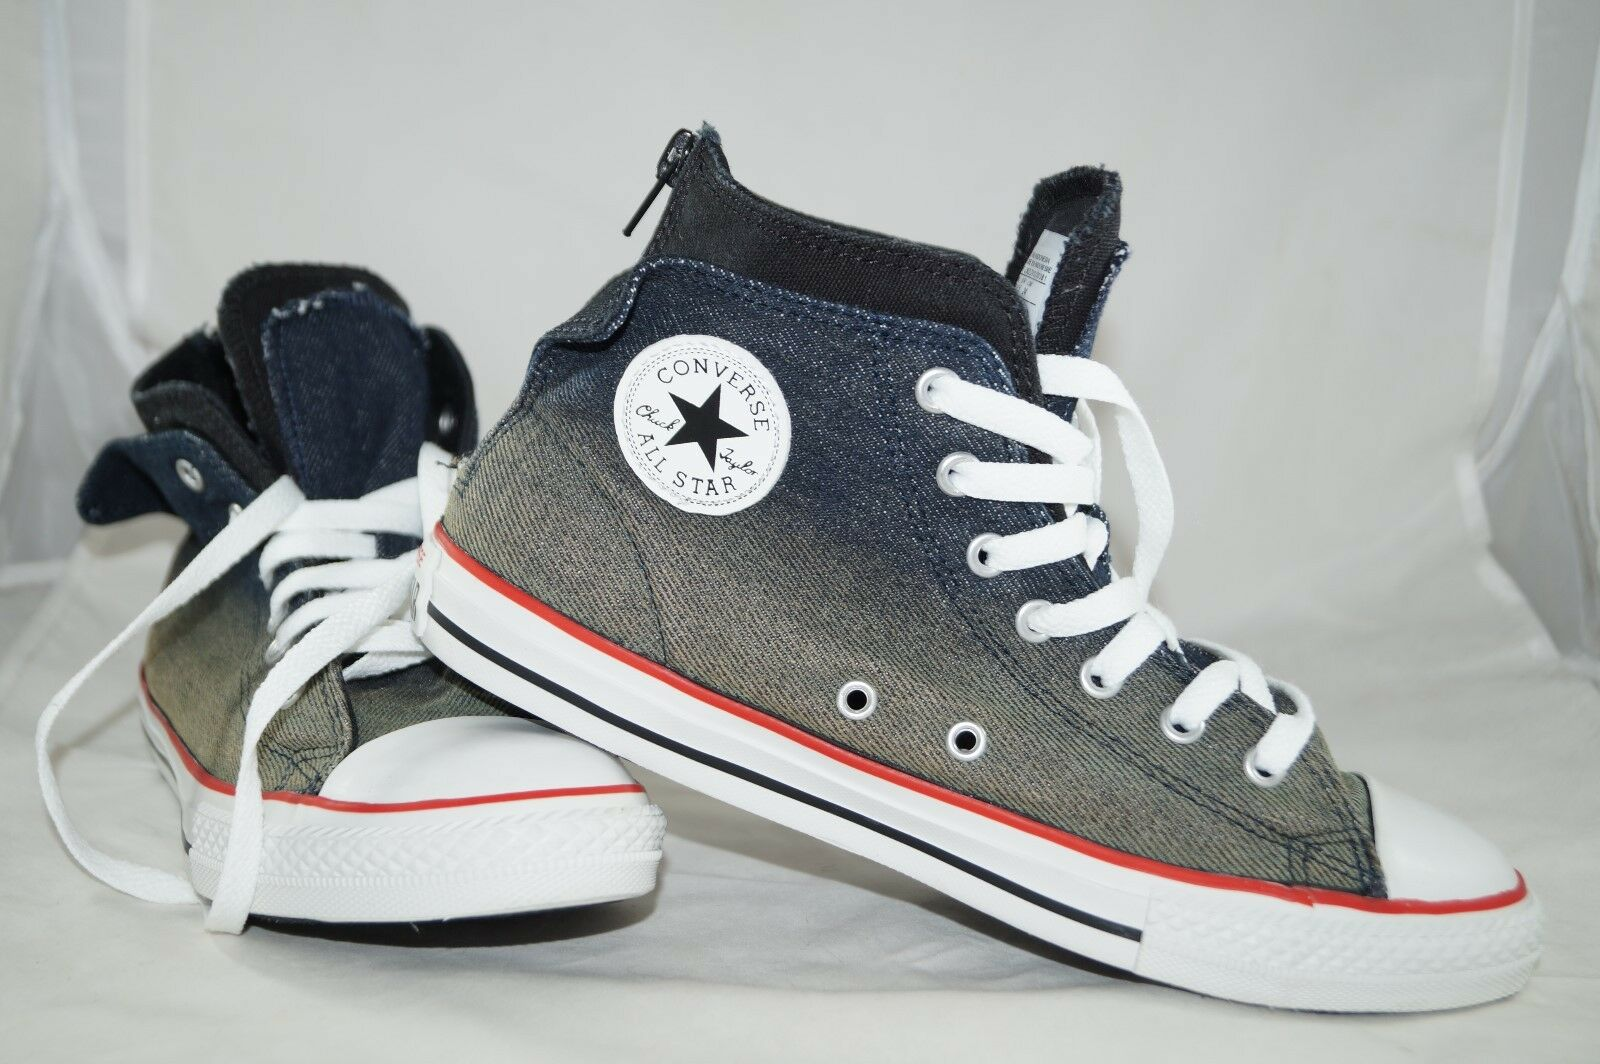 Converse Converse Converse Chuck Taylor All Star ZIP Back High Tops Gr  38,5 Sportschuhe 9b12ec